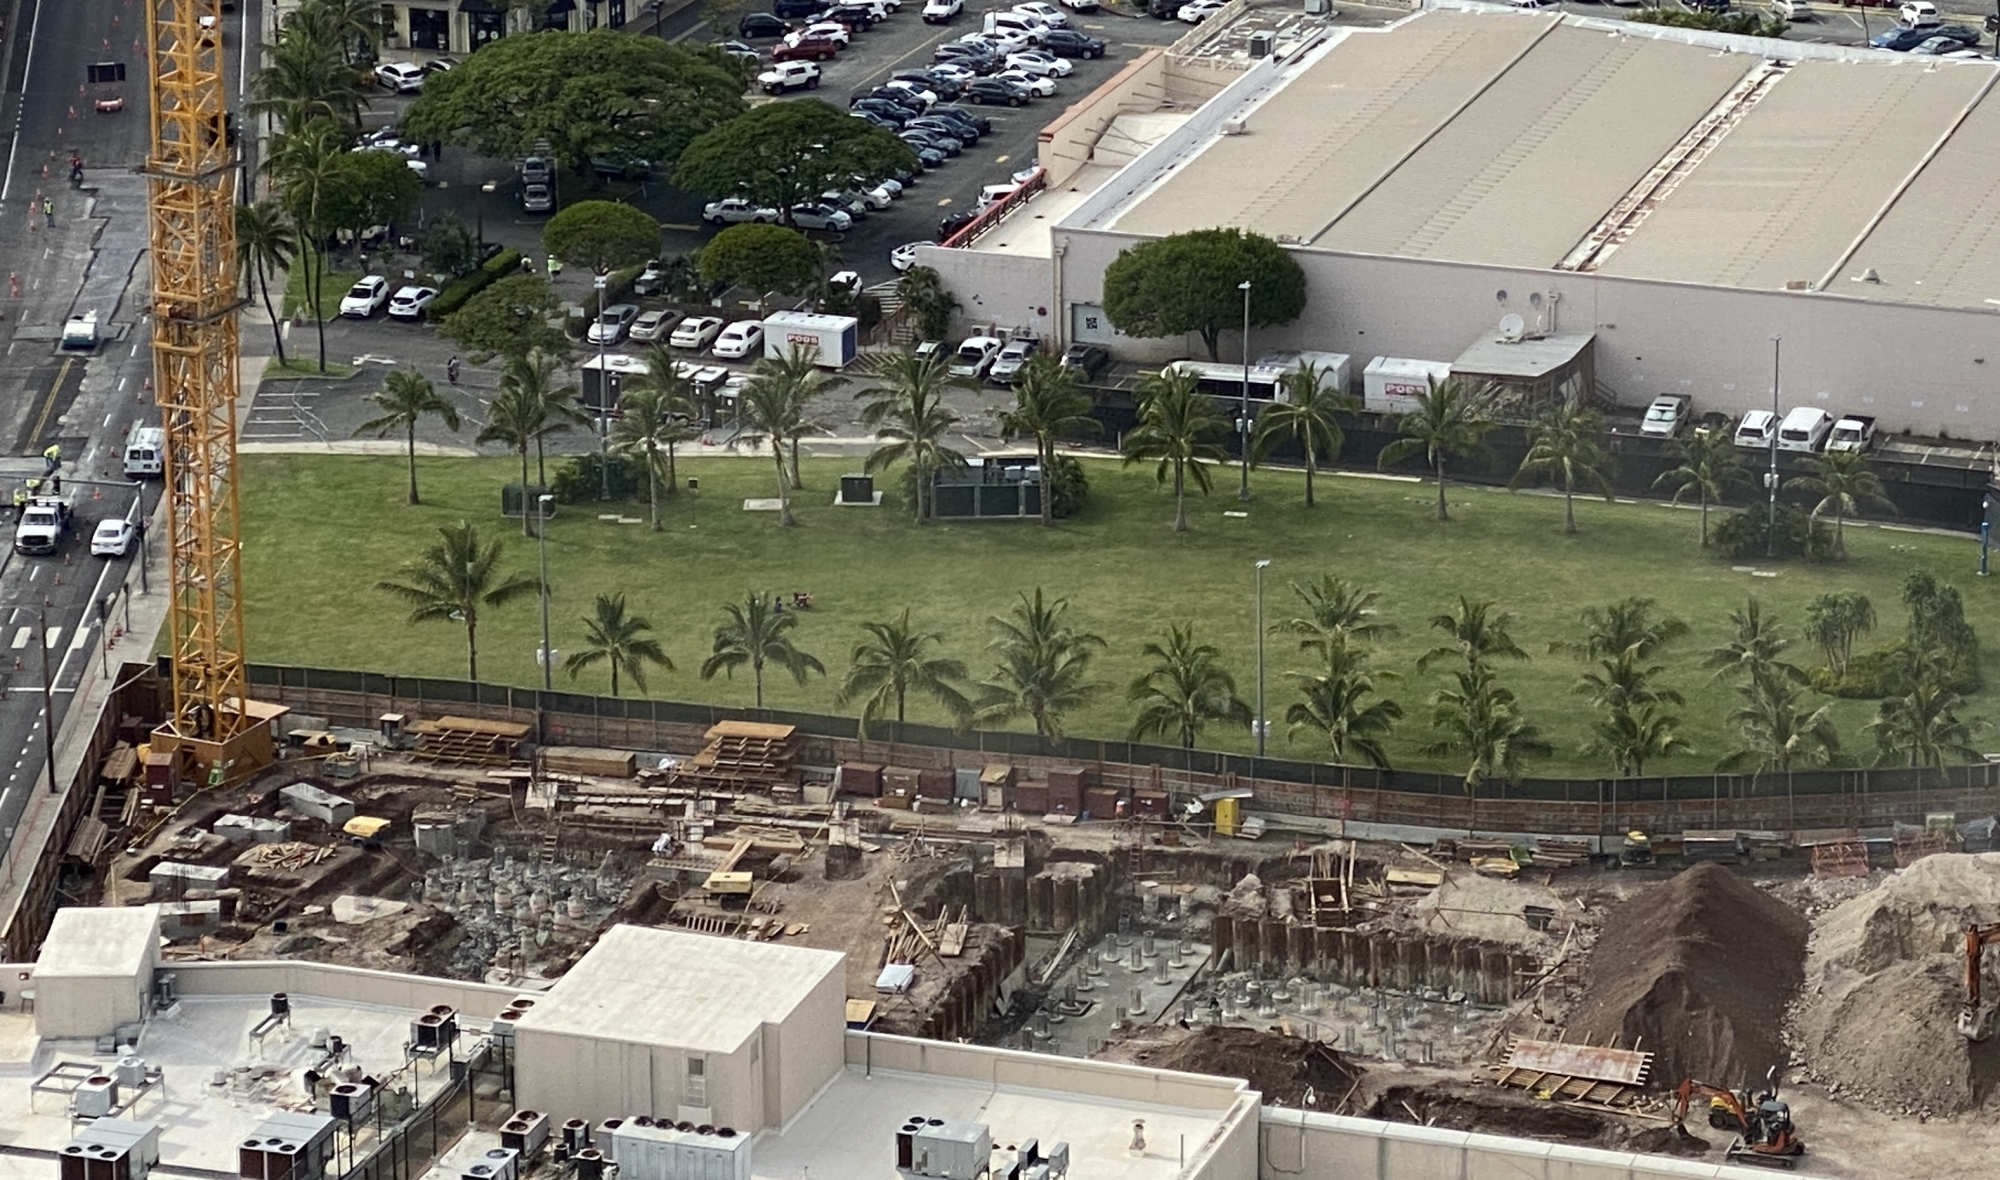 Ko'ula construction updates February 20, 2020